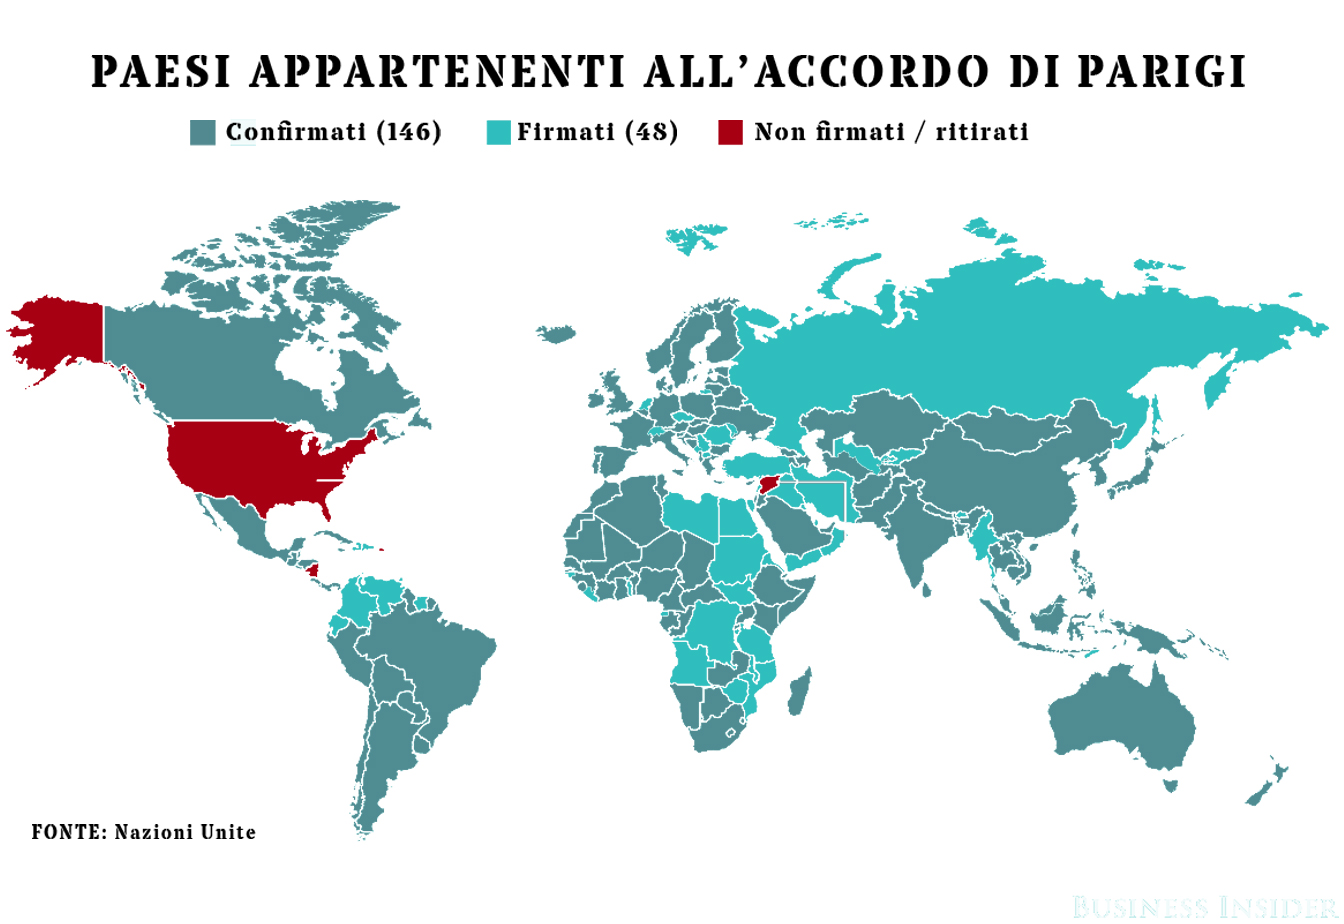 Paesi appartenenti all'Accordo di Parigi